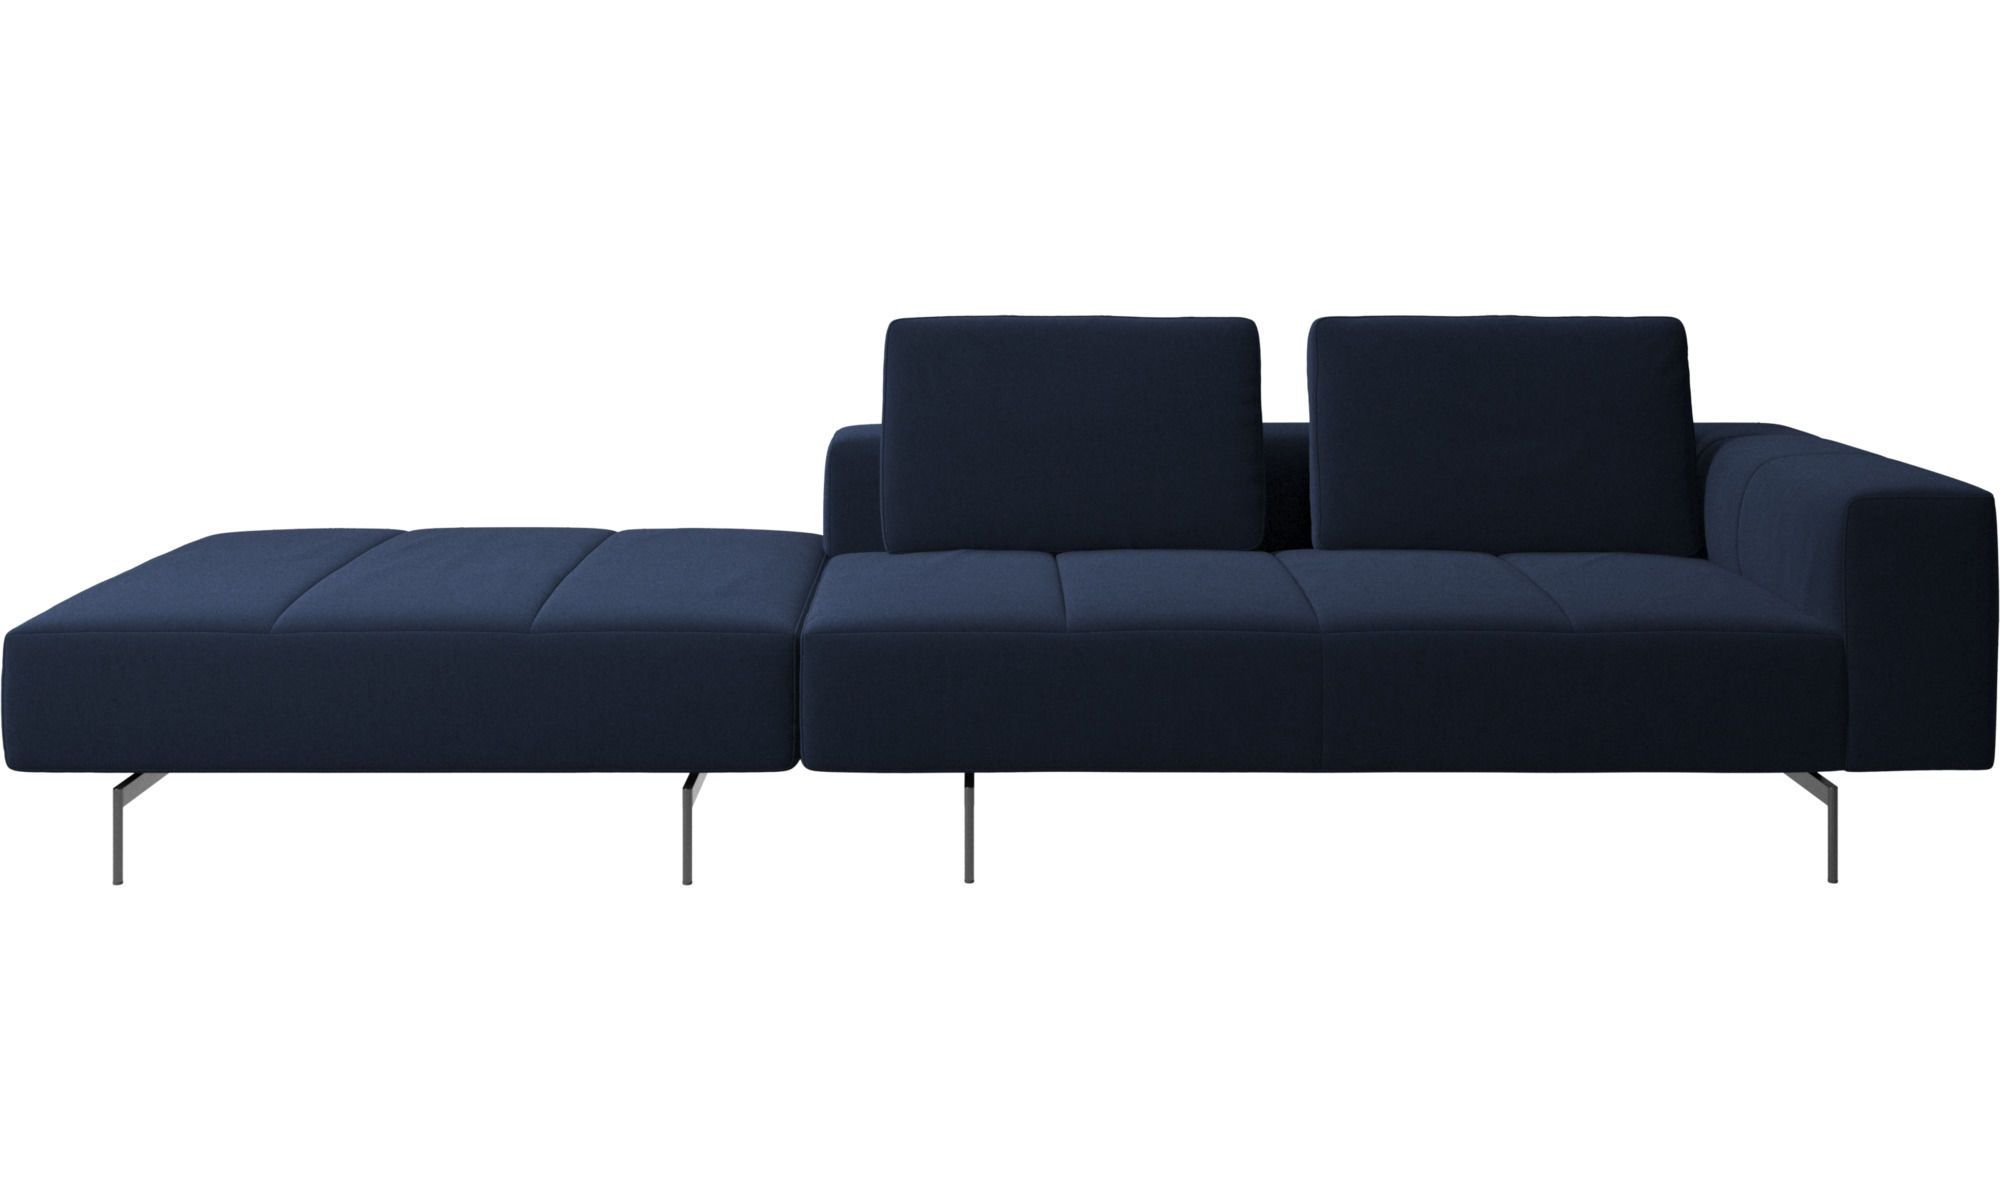 Amsterdam Sofa With Footstool On Left Side Comfortable Sofa Modular Sofa Sofa